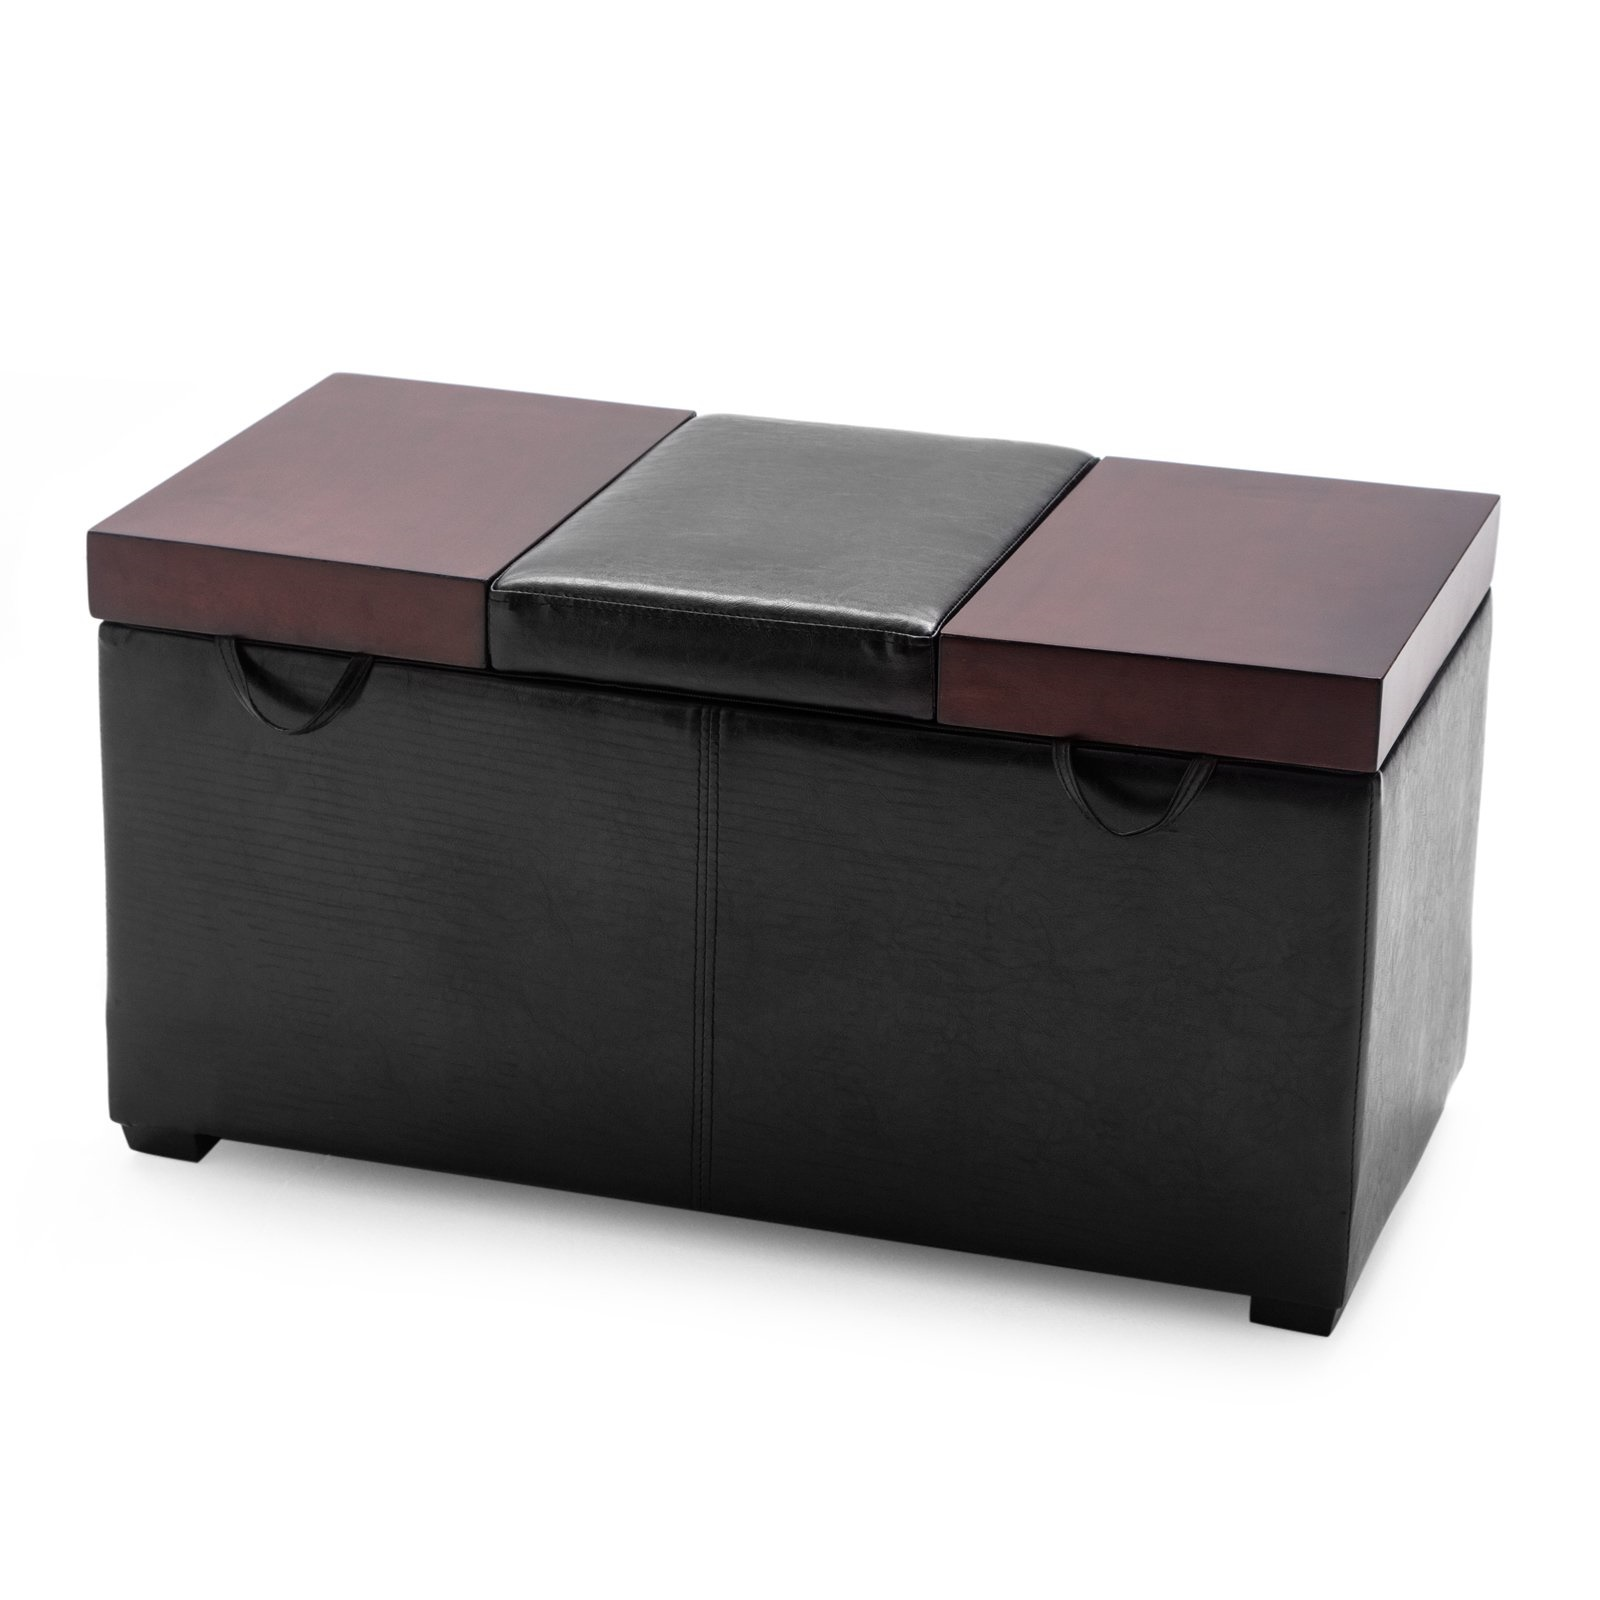 Black Ottoman Storage Lift Top Bench Leather Living Room Furniture Coffee Table Ebay